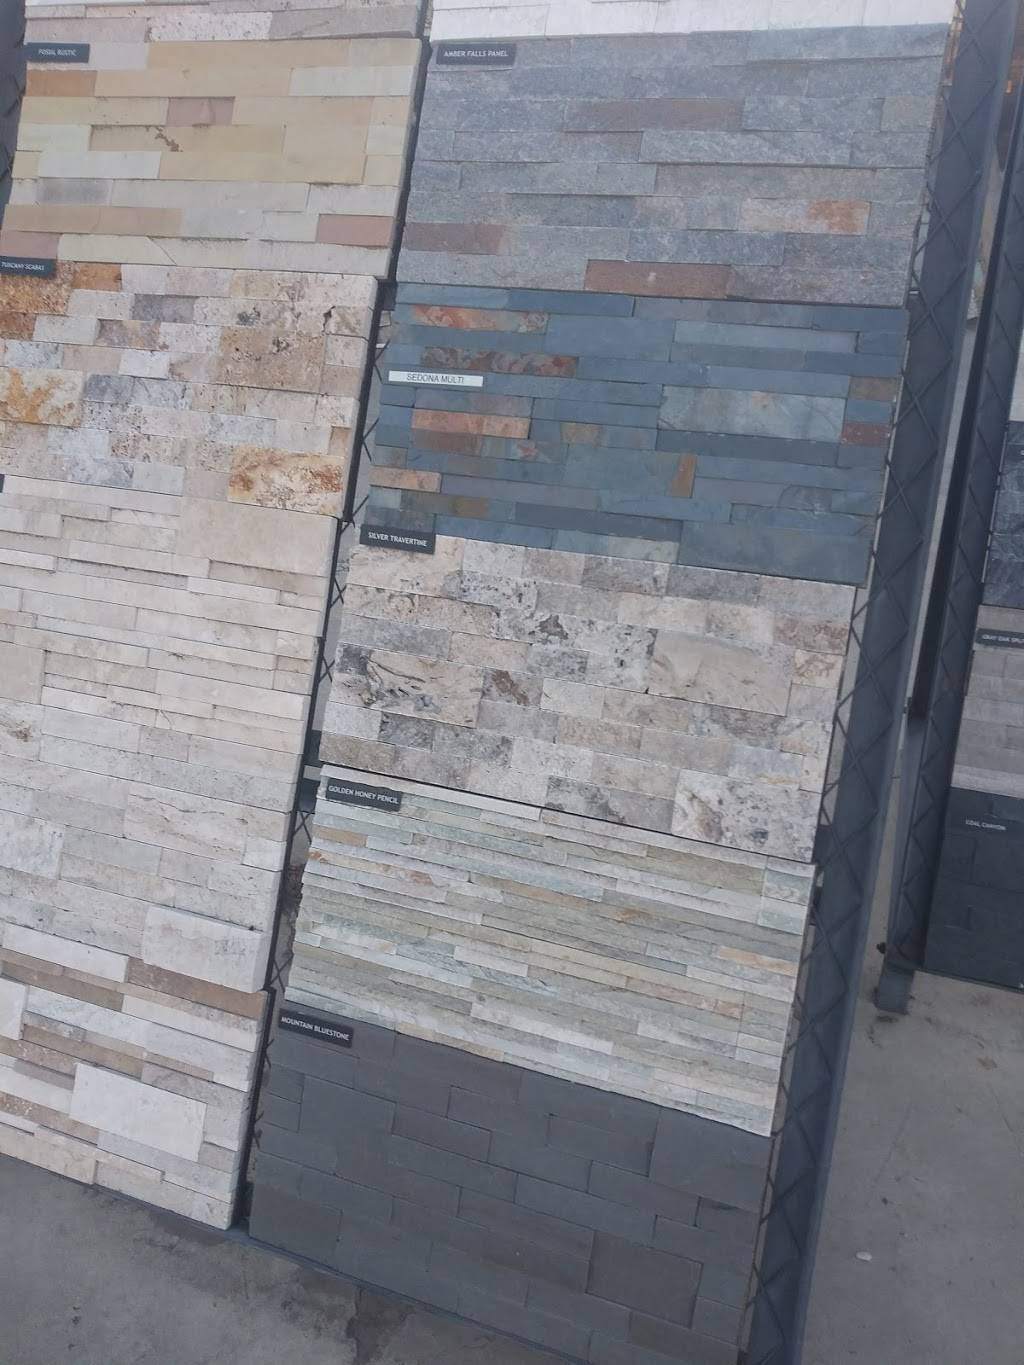 Resource Building Materials - store  | Photo 6 of 6 | Address: 225 Turnbull Canyon Rd, City of Industry, CA 91745, USA | Phone: (626) 330-3178